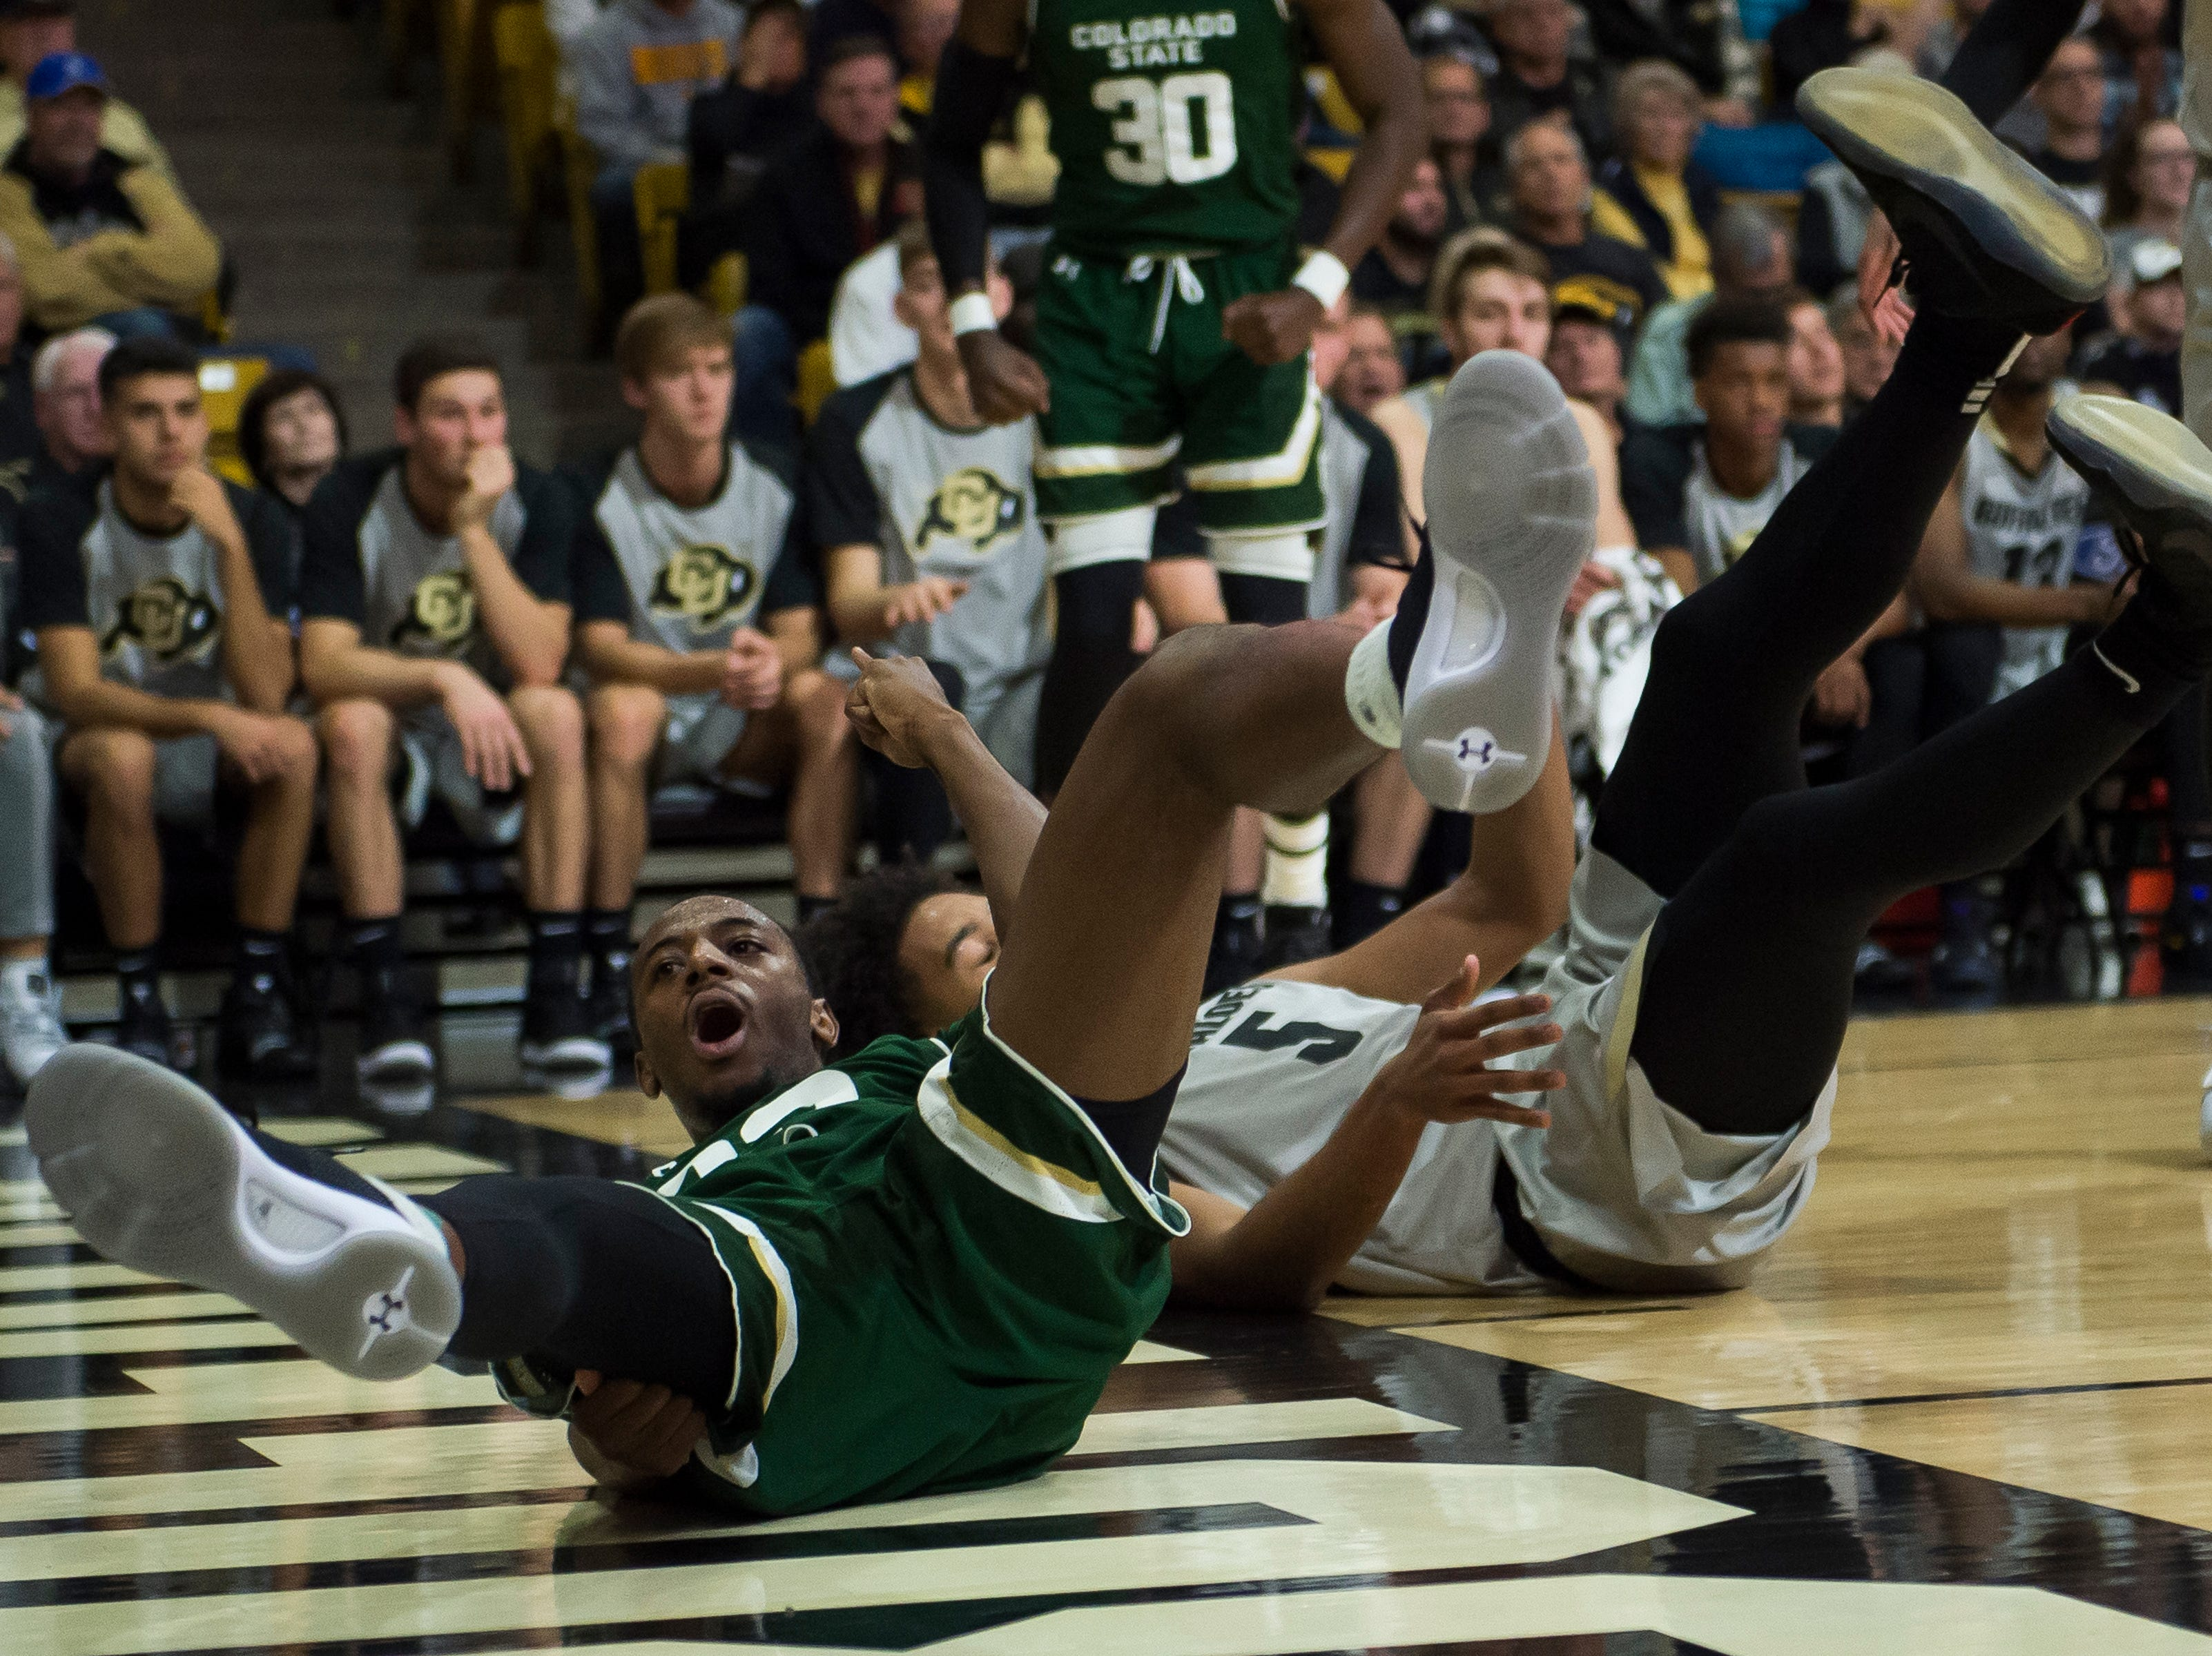 Colorado State University senior guar J.D. Paige (22) yells as he falls to the floor after being fouled by University of Colorado sophomore guard D'Shawn Schwartz (5) on Saturday, Dec. 1, 2018, at the CU Event Center in Boulder, Colo.